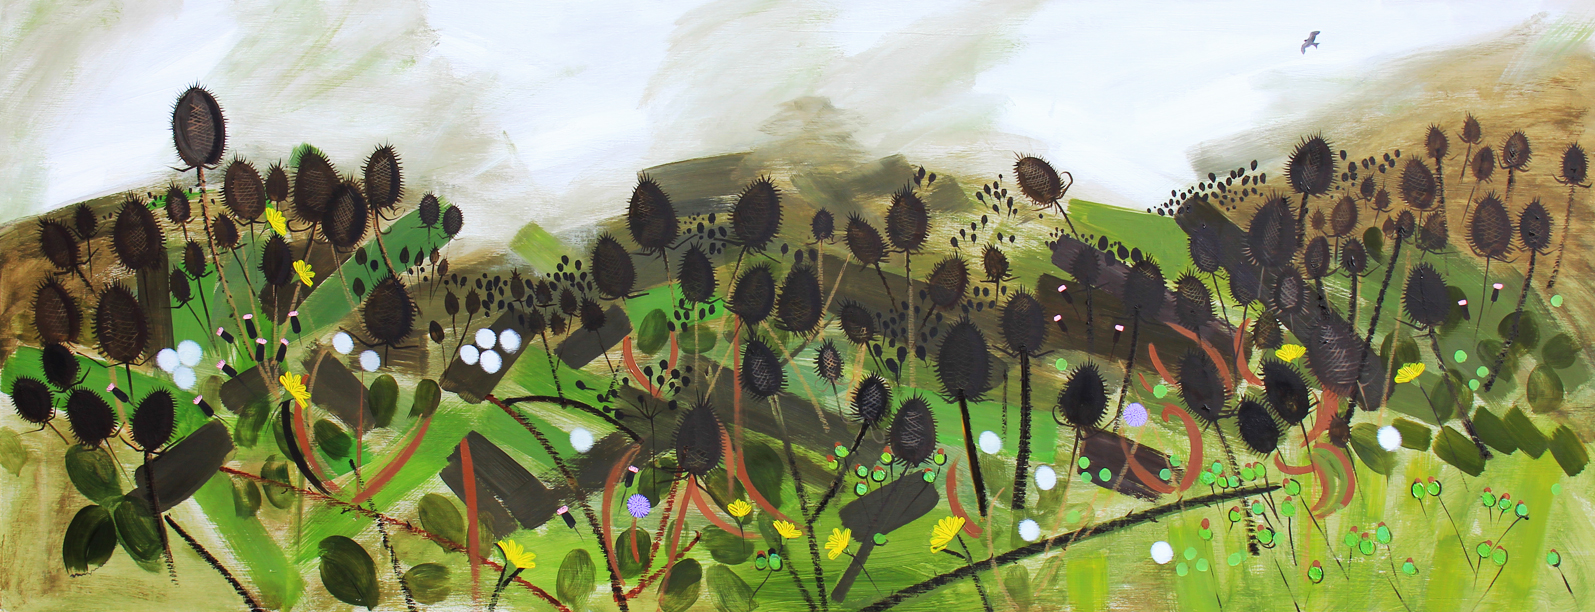 October Landscape Fearuring Teasels               Oil on Board 2018     180cm x 70cm